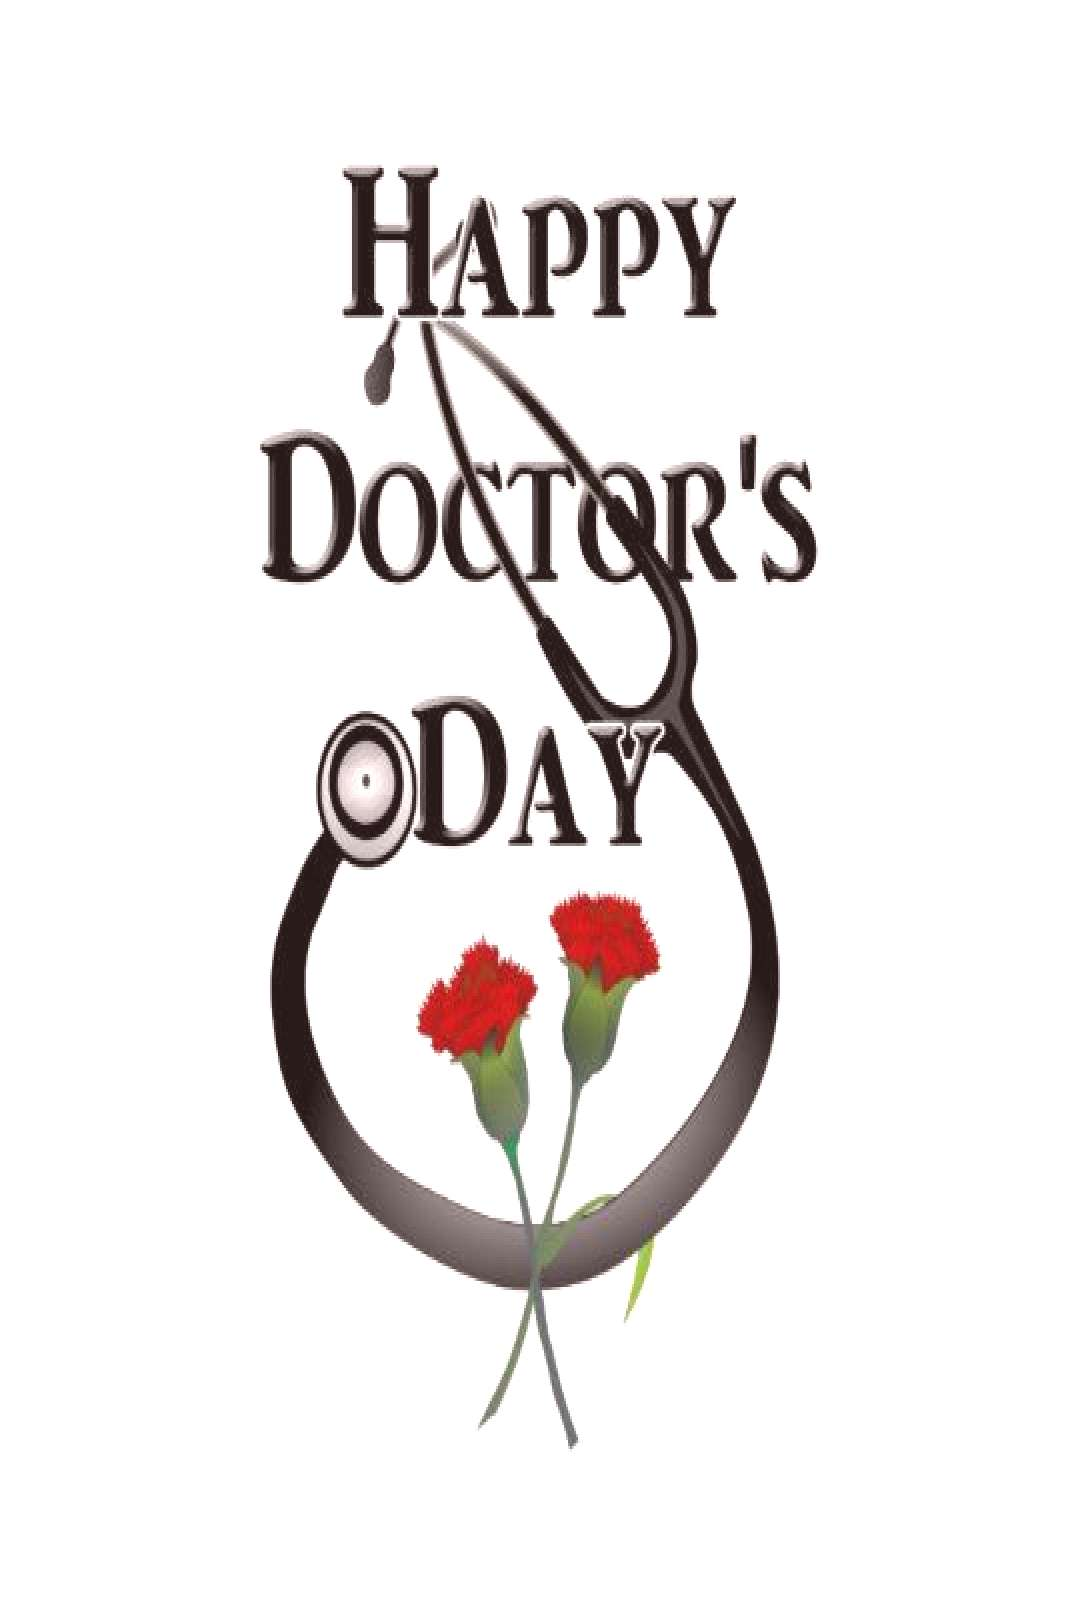 Happy Doctors Day Wishes + Happy Doctors Day happy doctors day wishes \ happy doctors day + happy d